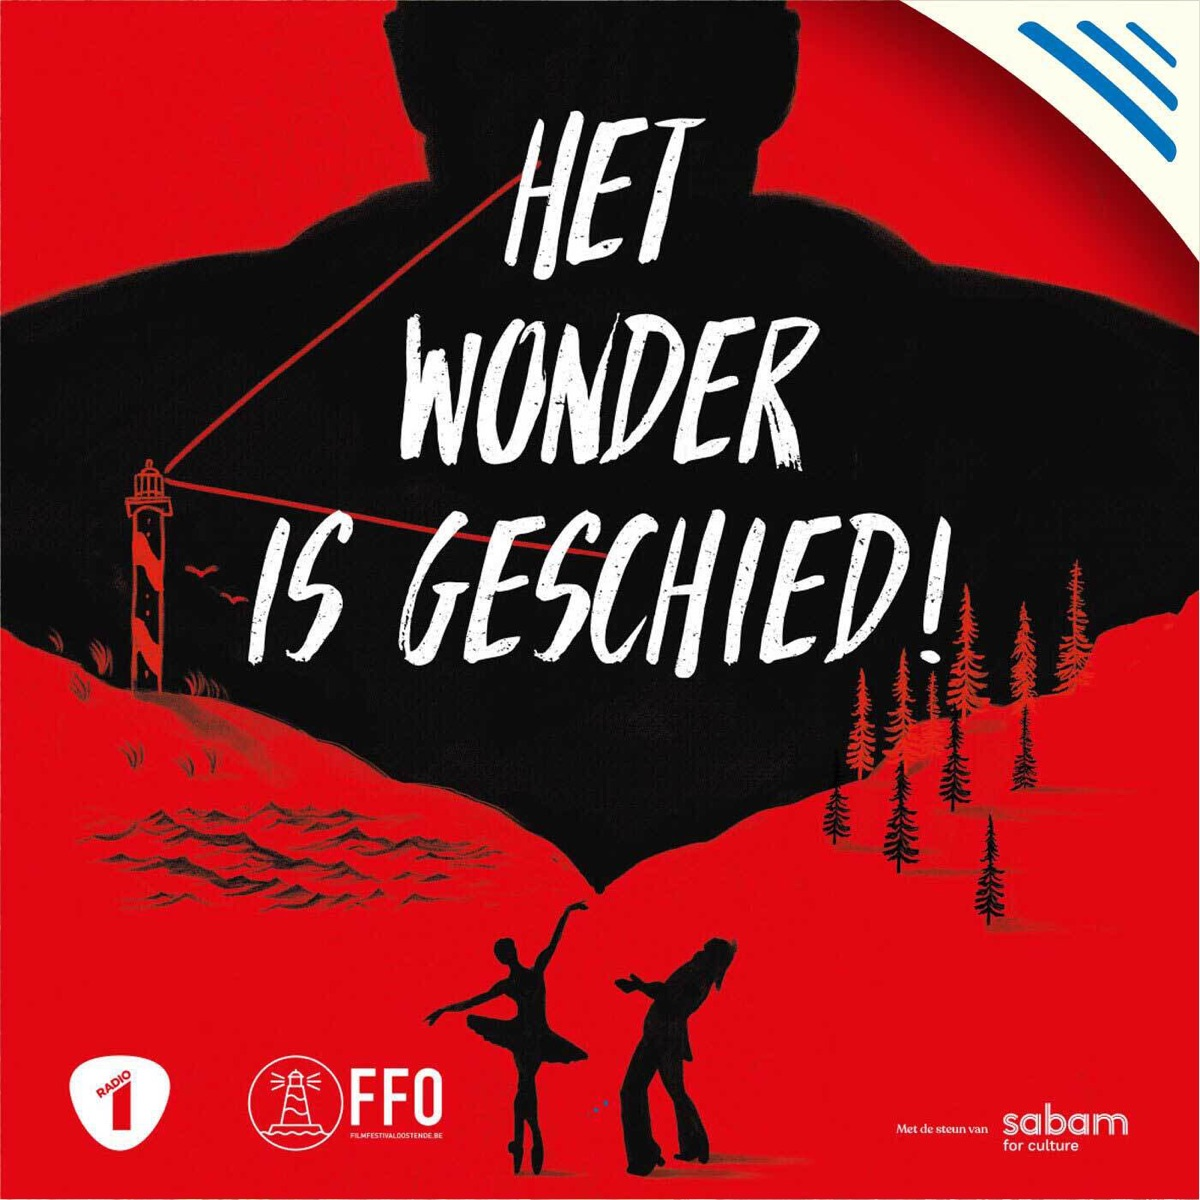 Het wonder is geschied